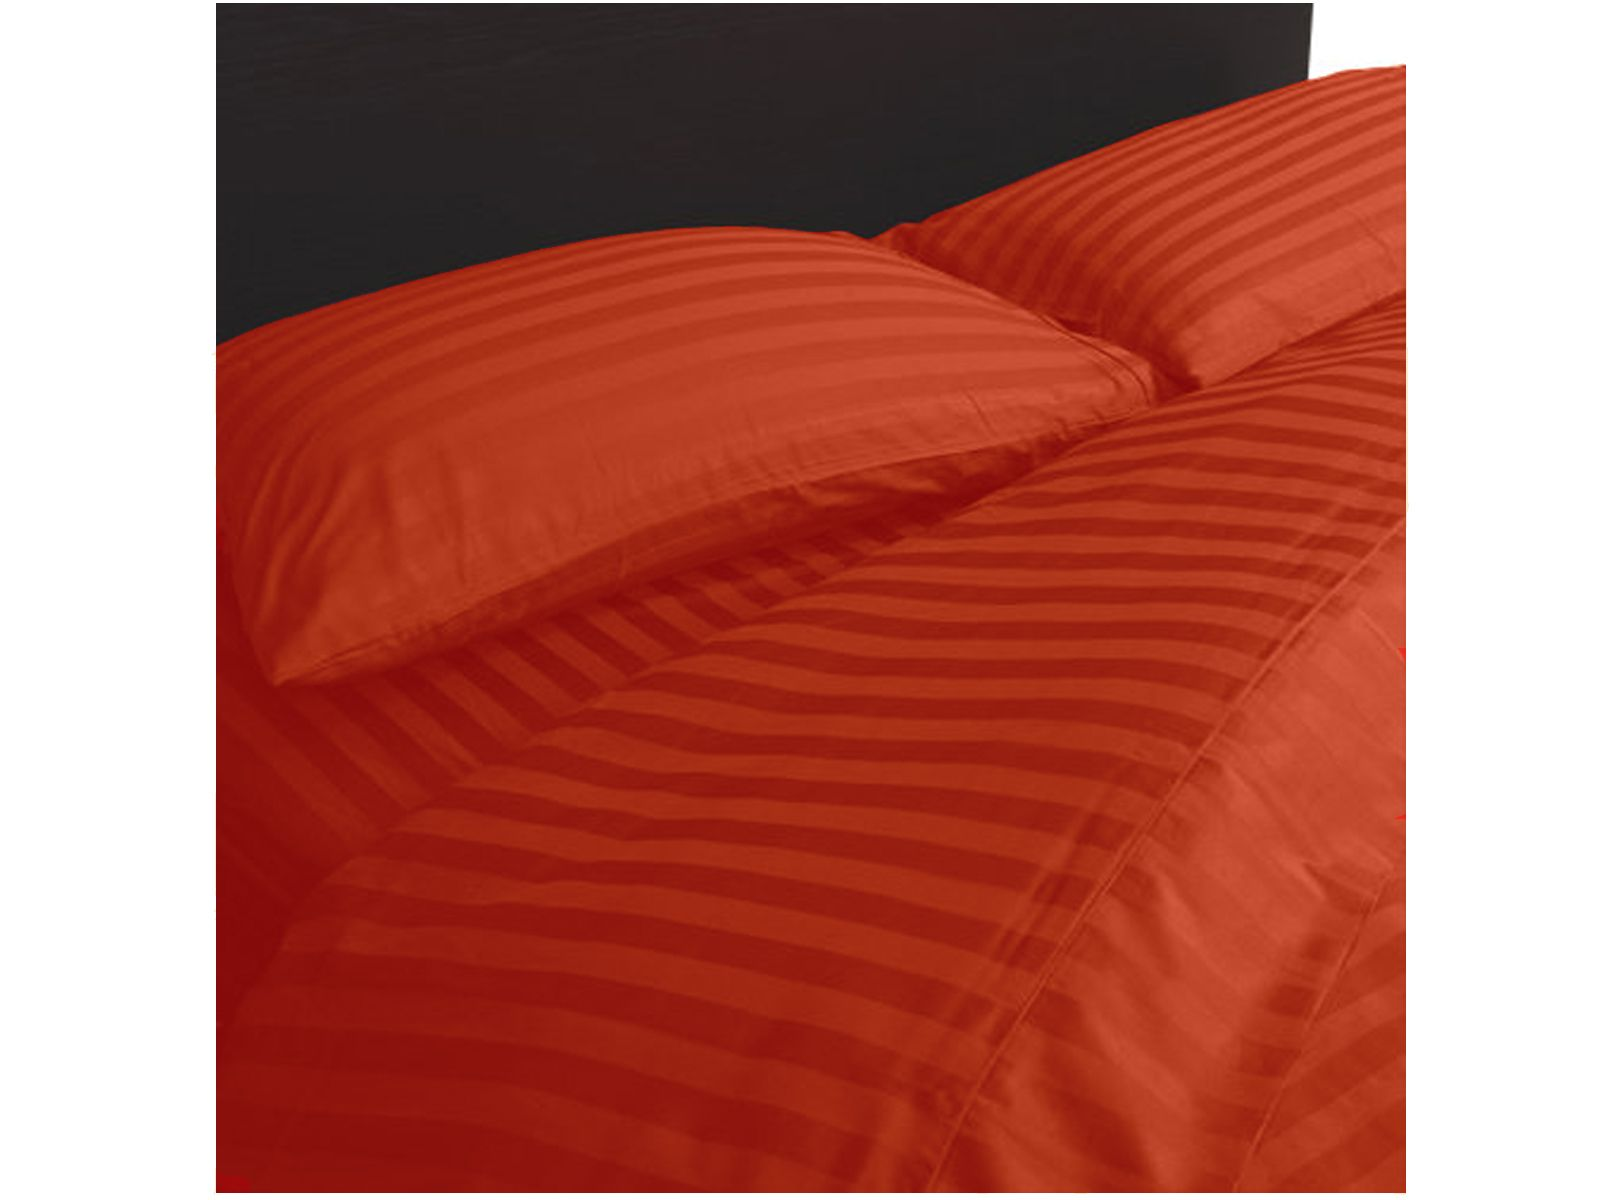 Extravagant Sheets Hotel Quality 800TC Egyptian Cotton Stripe Sheet Set - Short Queen , Brick Red with 30